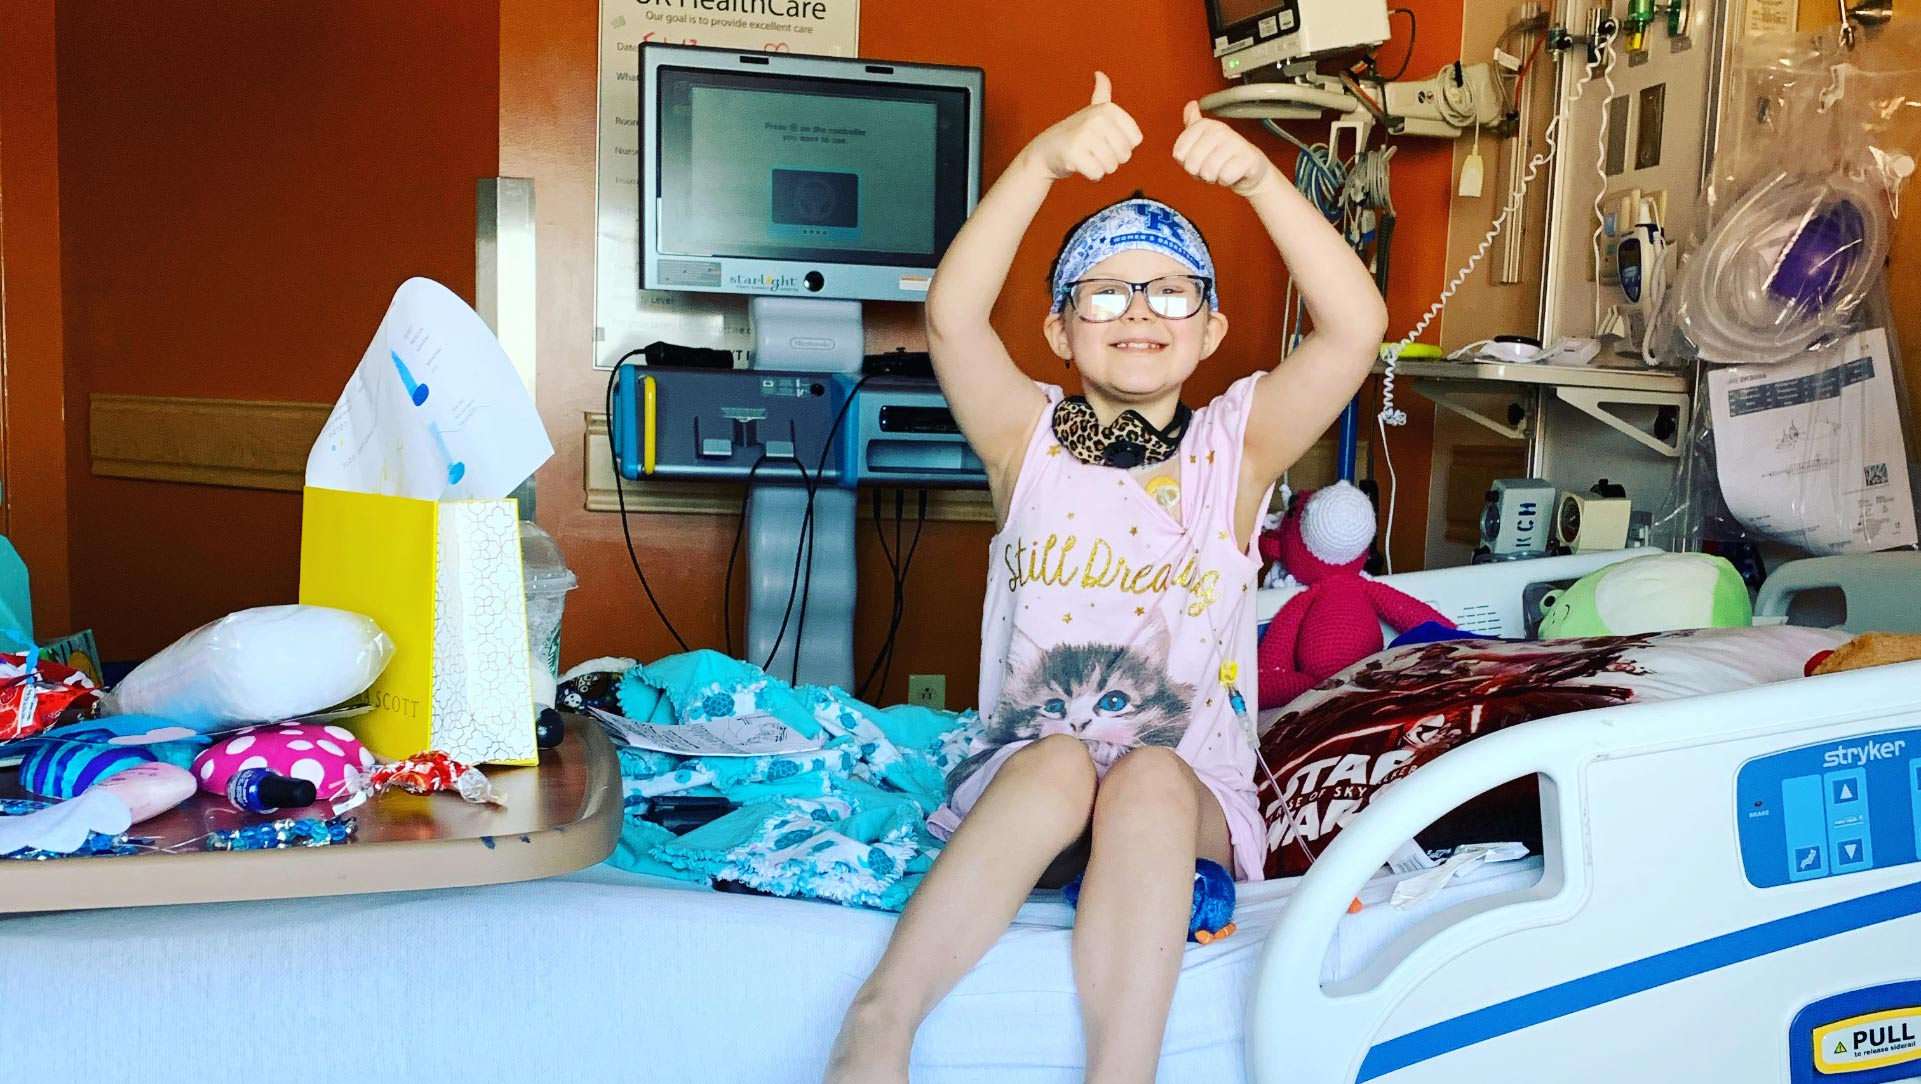 A photo of Ellie in her hospital room where she is sitting upright on the bed with both arms in the air giving two thumbs ups. Her room is full of colorful blankets, stuffed animals, and a yellow gift bag on her bed.